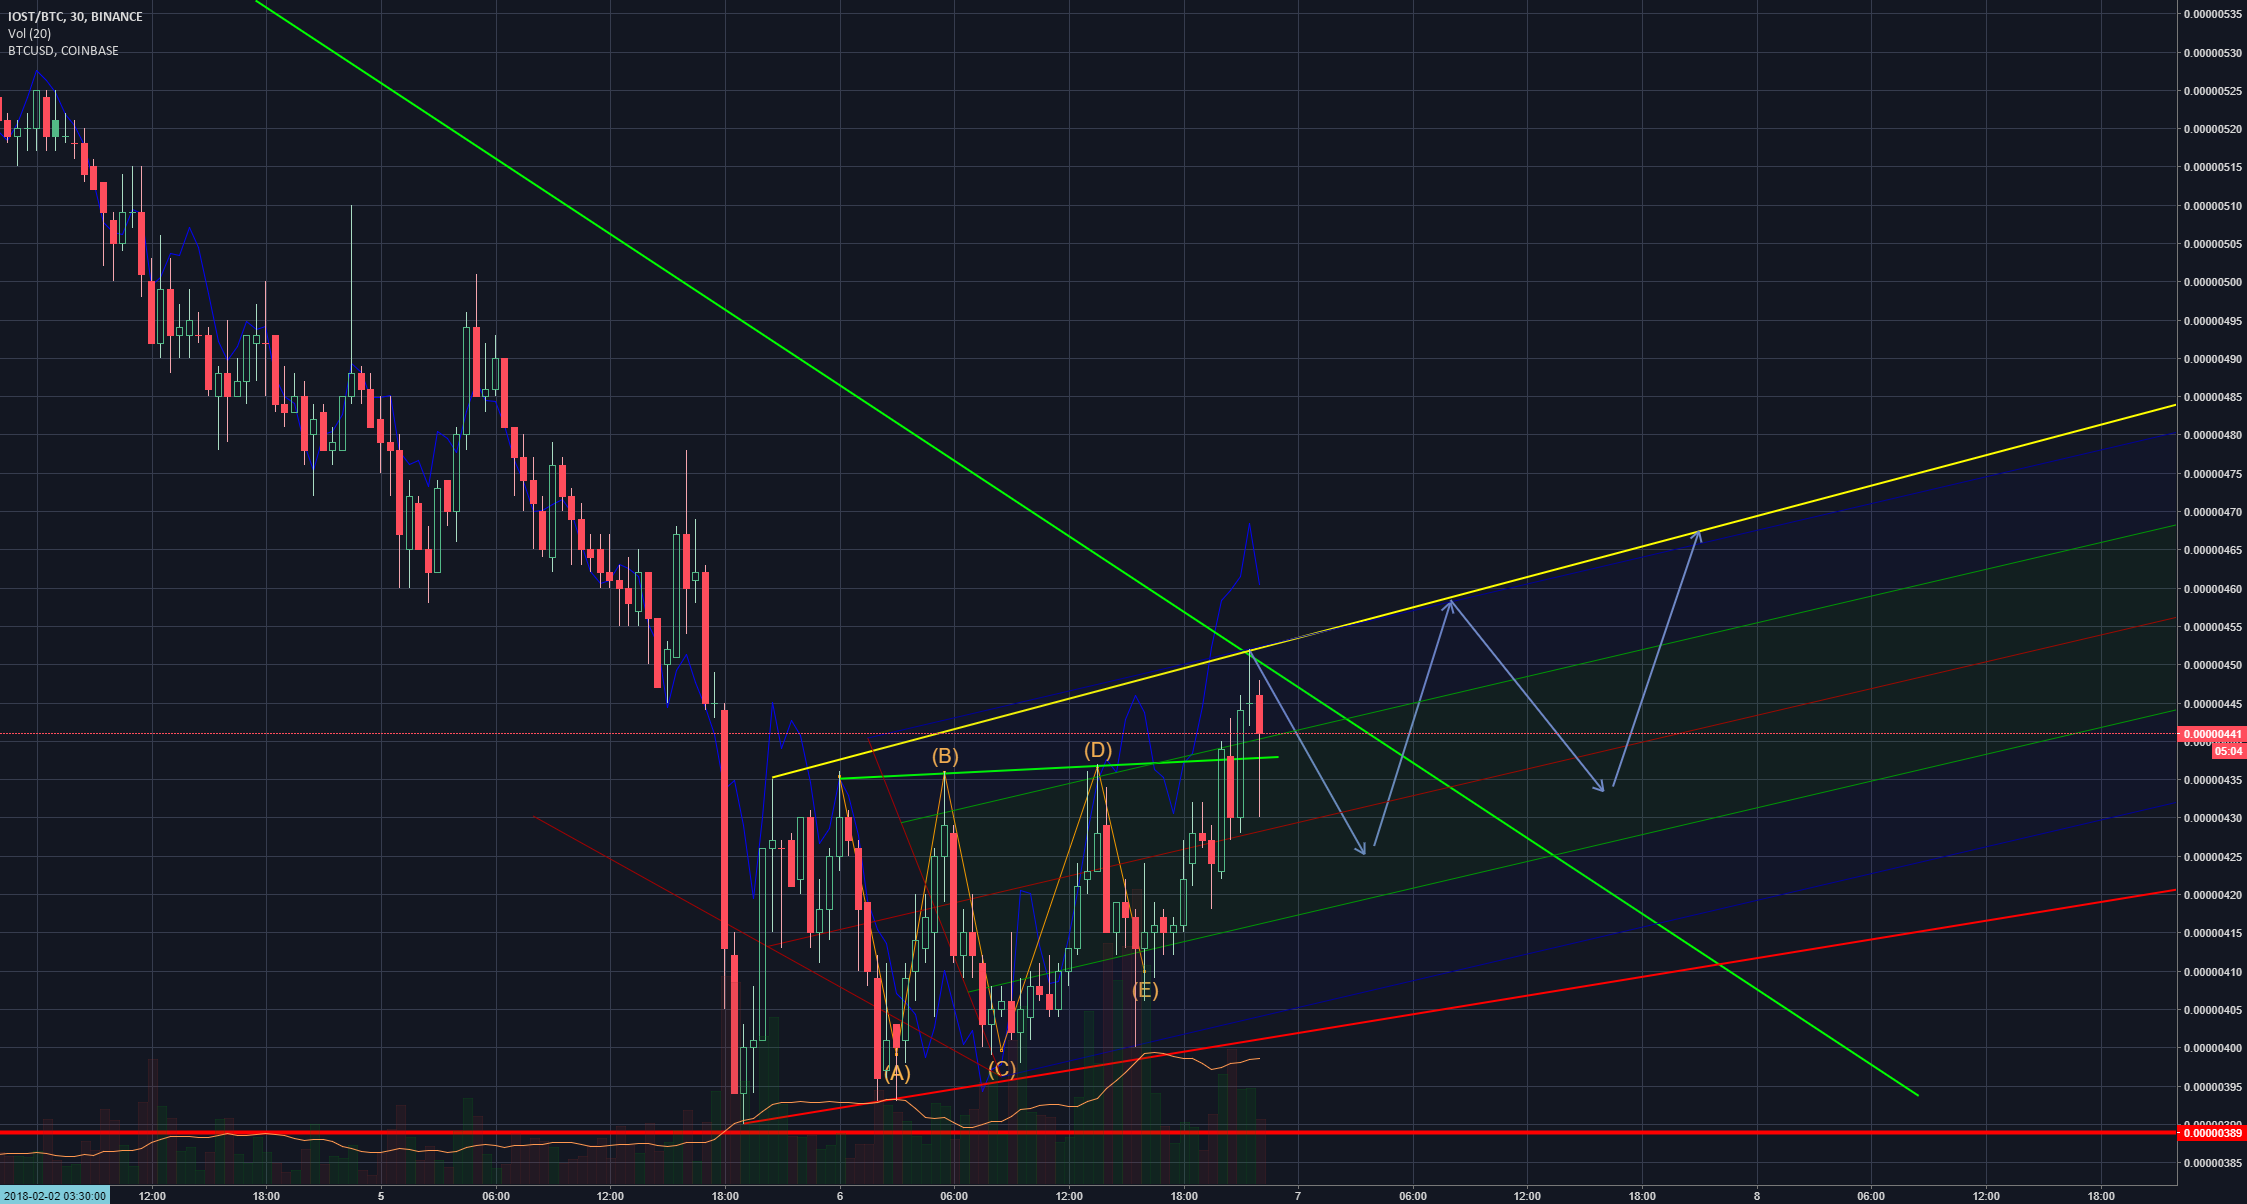 Let's hope for BTC recovery!